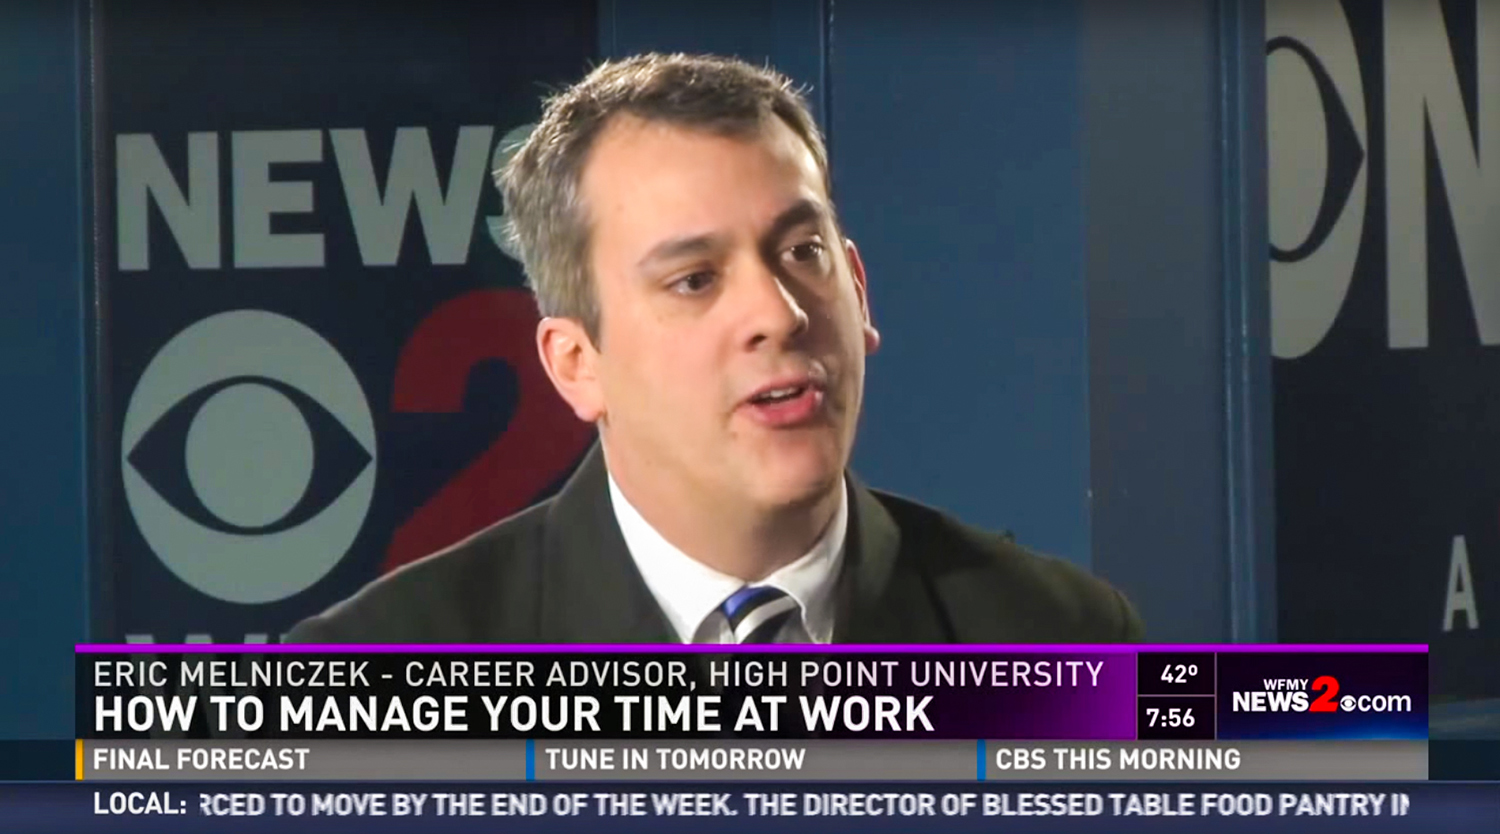 Eric Melniczek, career advisor at HPU, spoke with WFMY's Lauren Melvin about managing your time in the workplace.